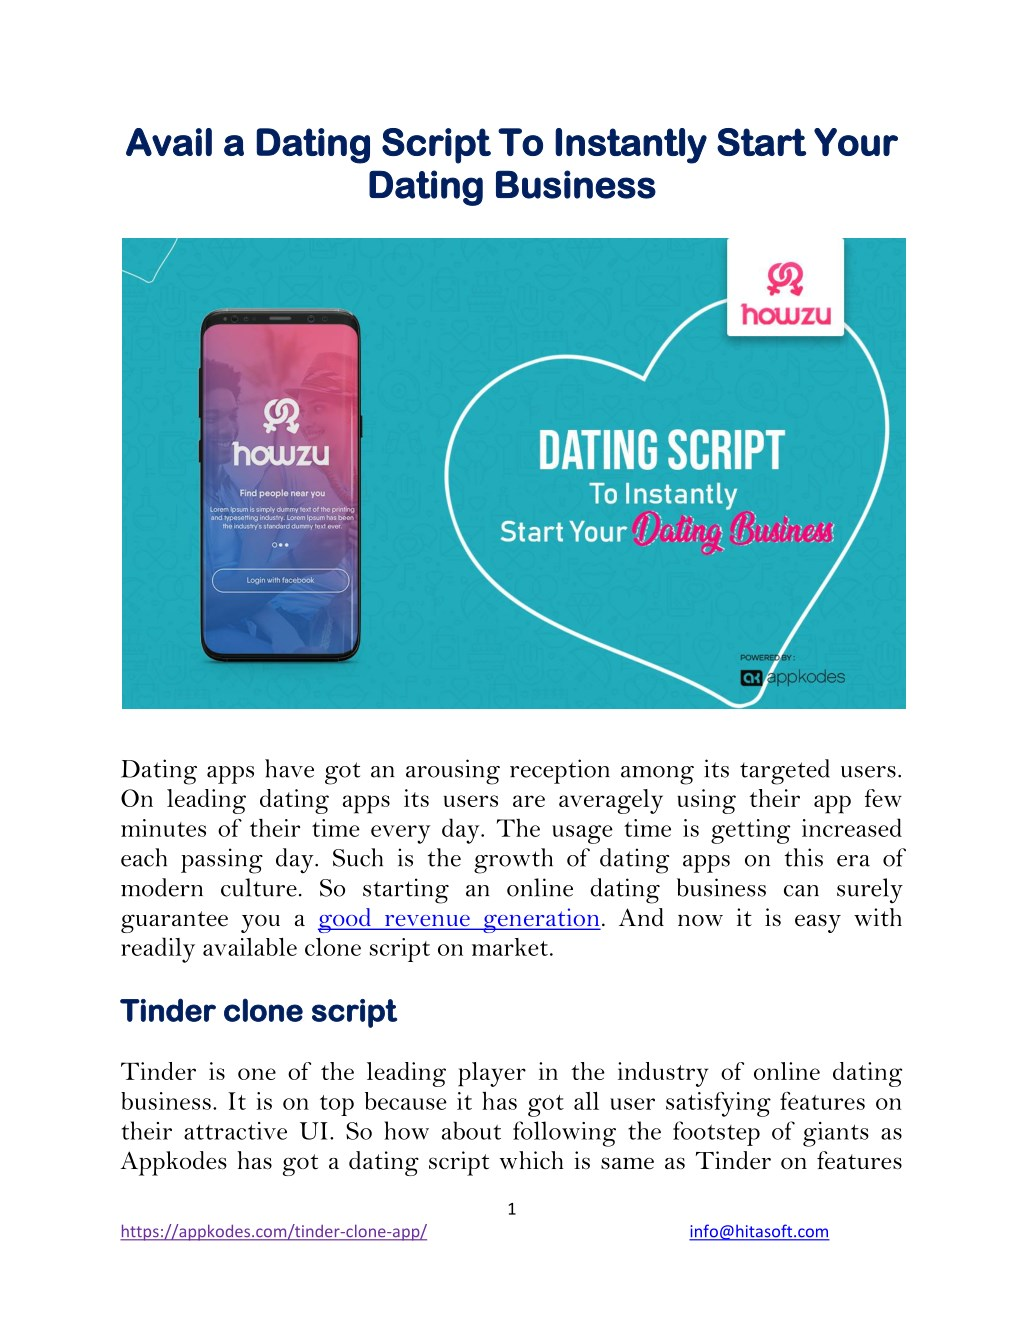 how to start a online dating business